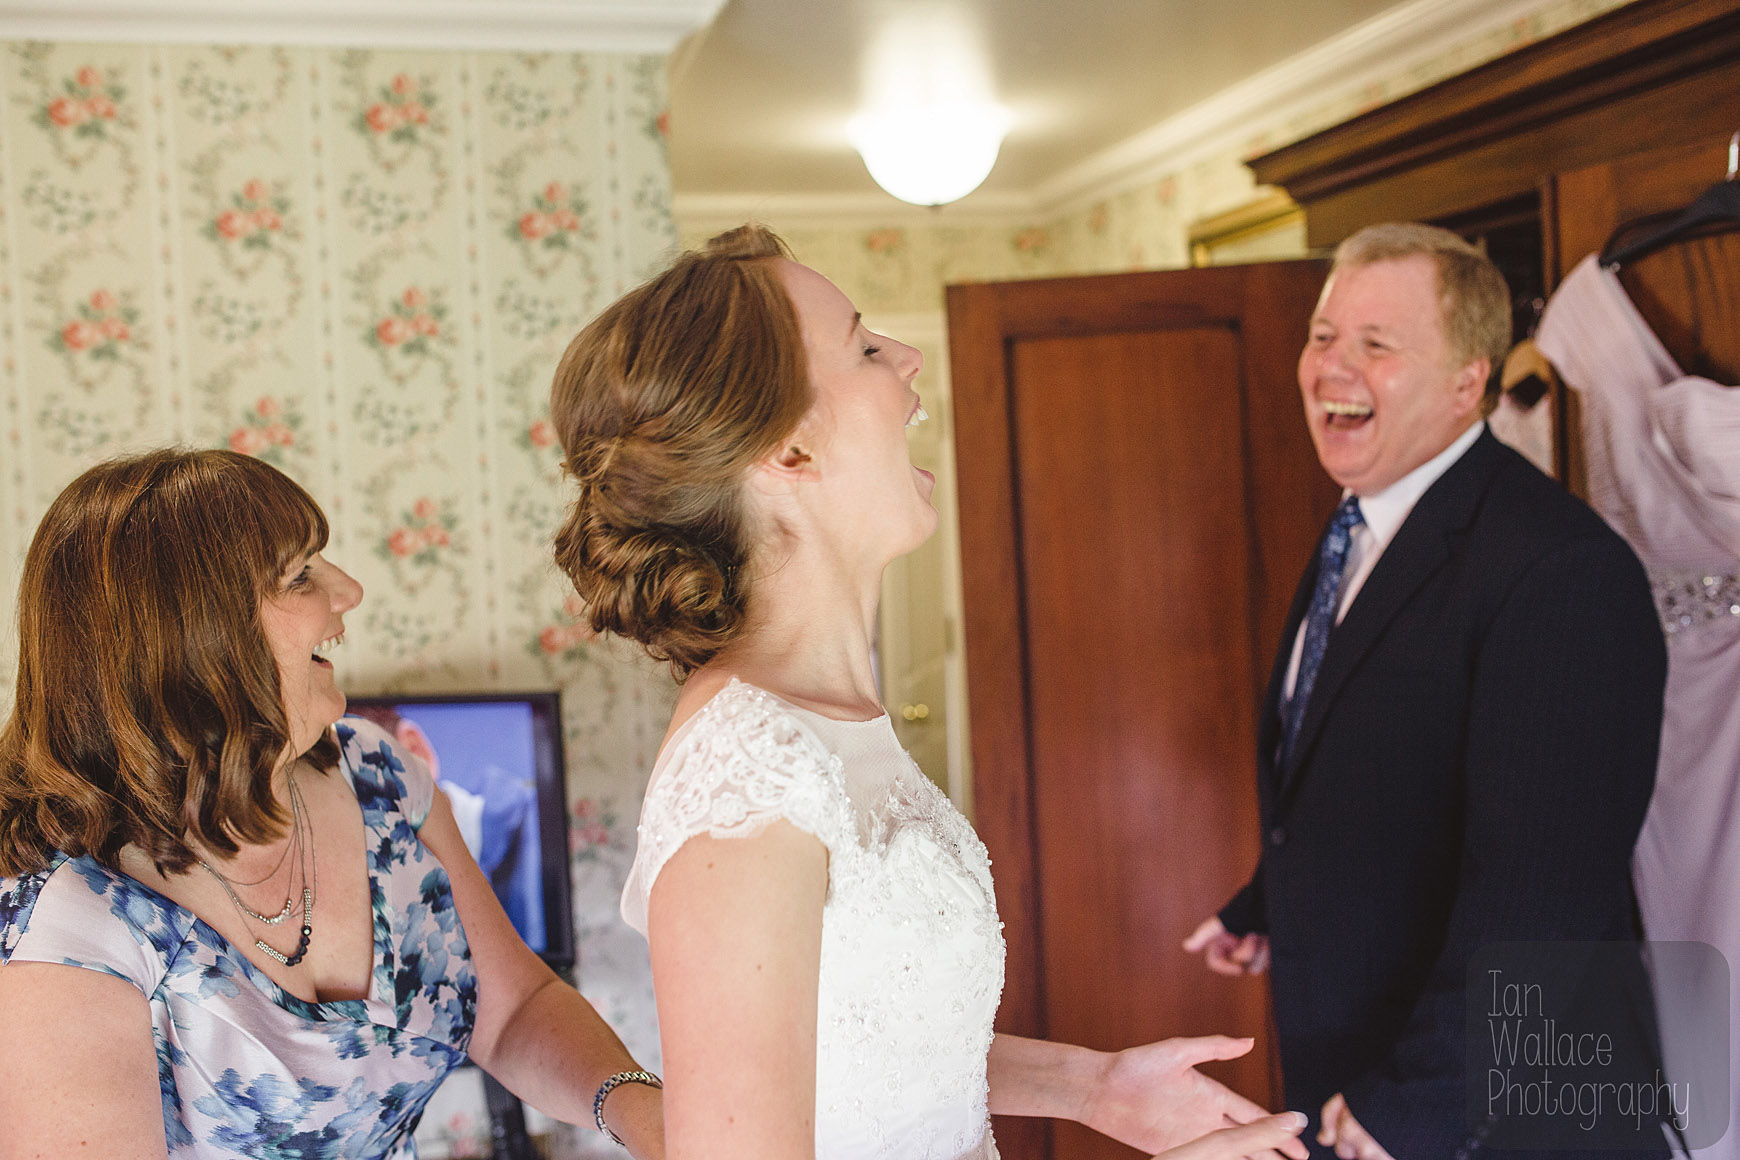 Father, mother and daughter laughing breaking the nerves.